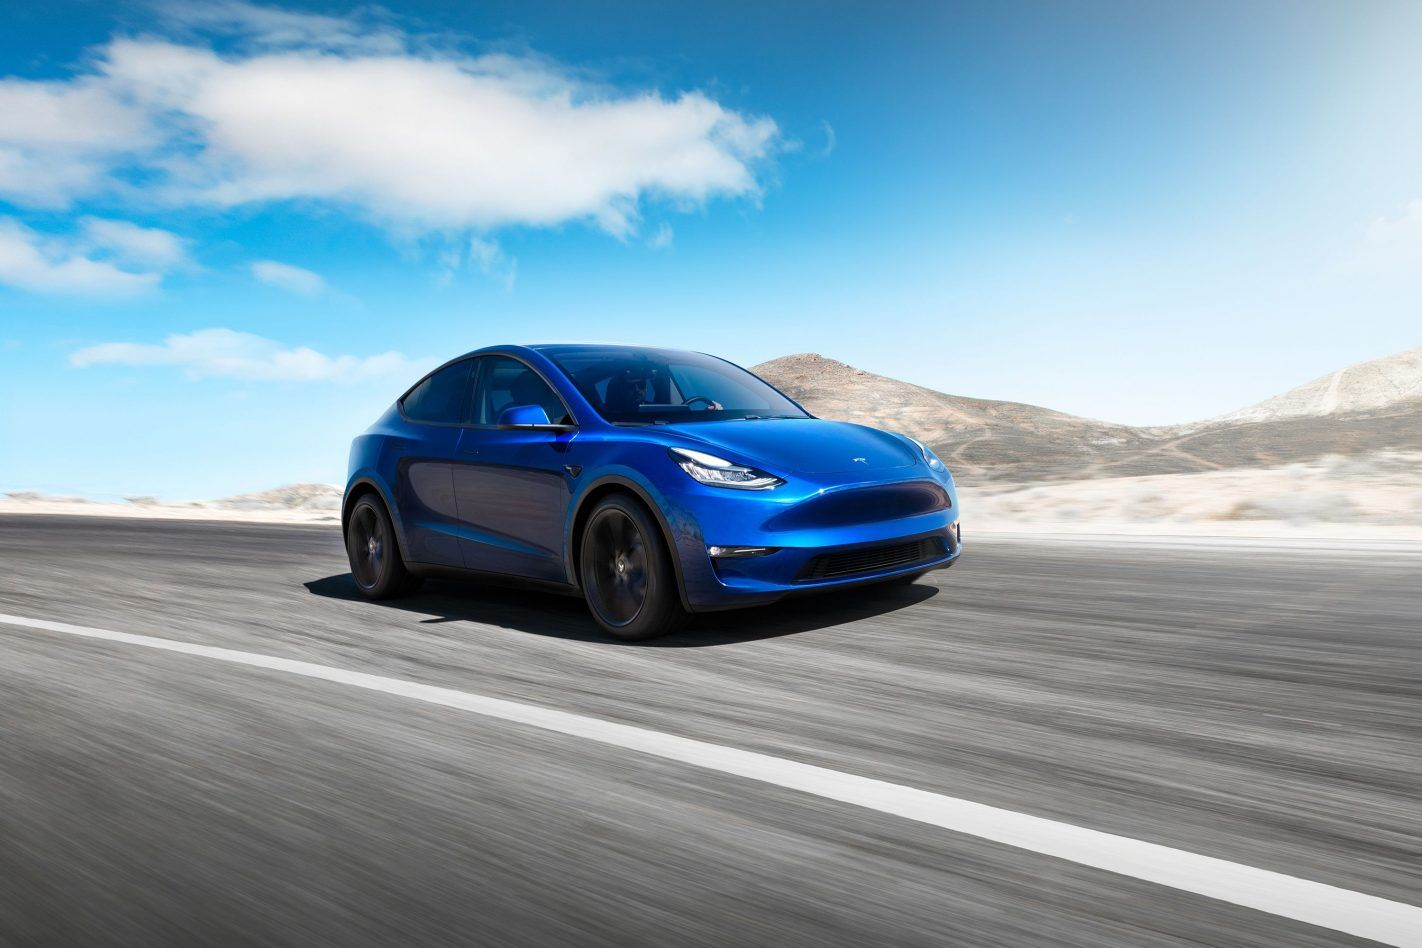 2021 Tesla Model Y Review Production Features Release And Photos Mobil Mewah Mobil Sport Mobil